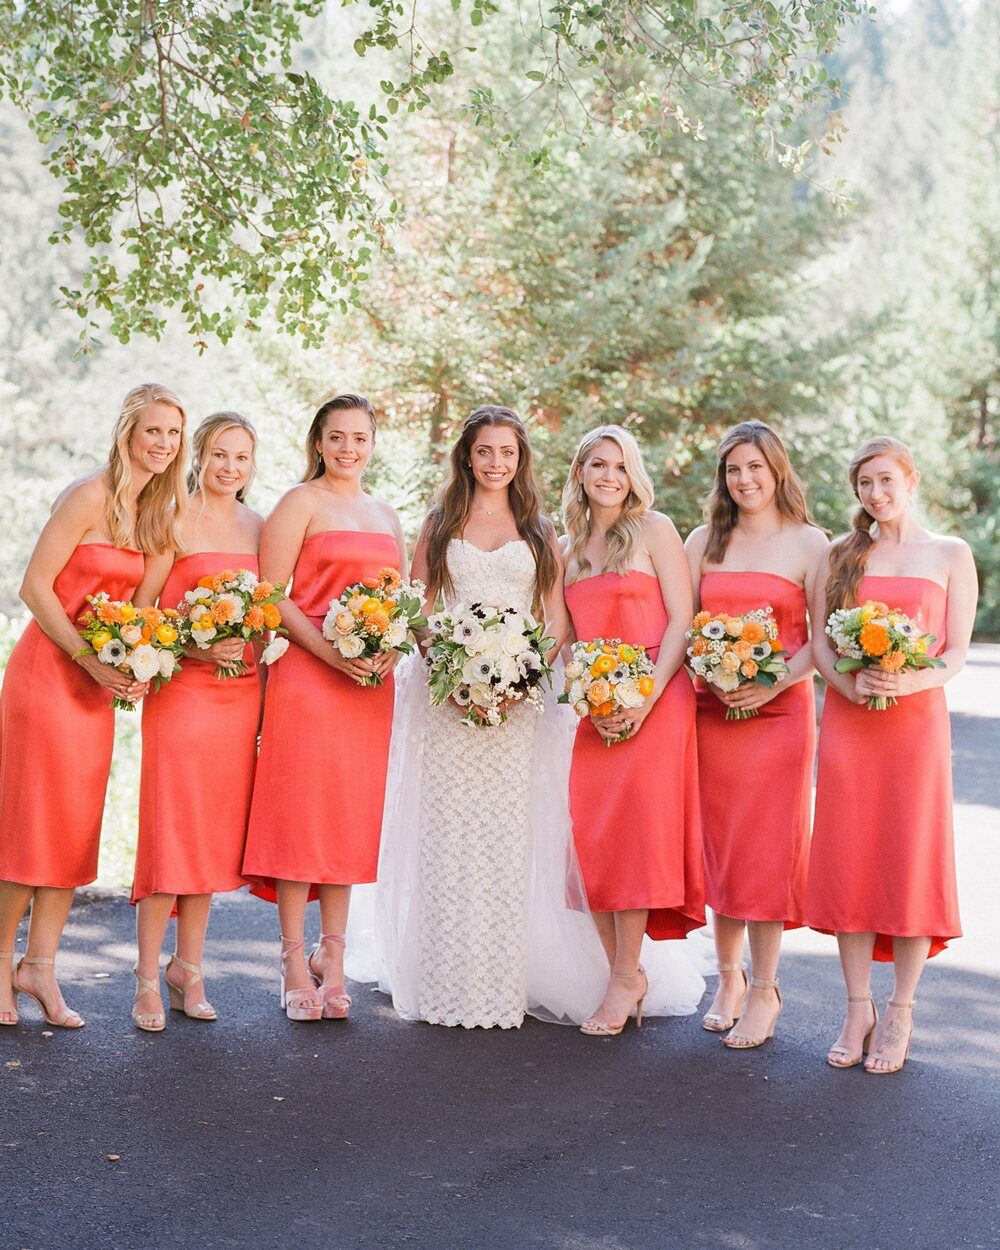 15 Coral Bridesmaids Dresses Your Wedding Party Will Love